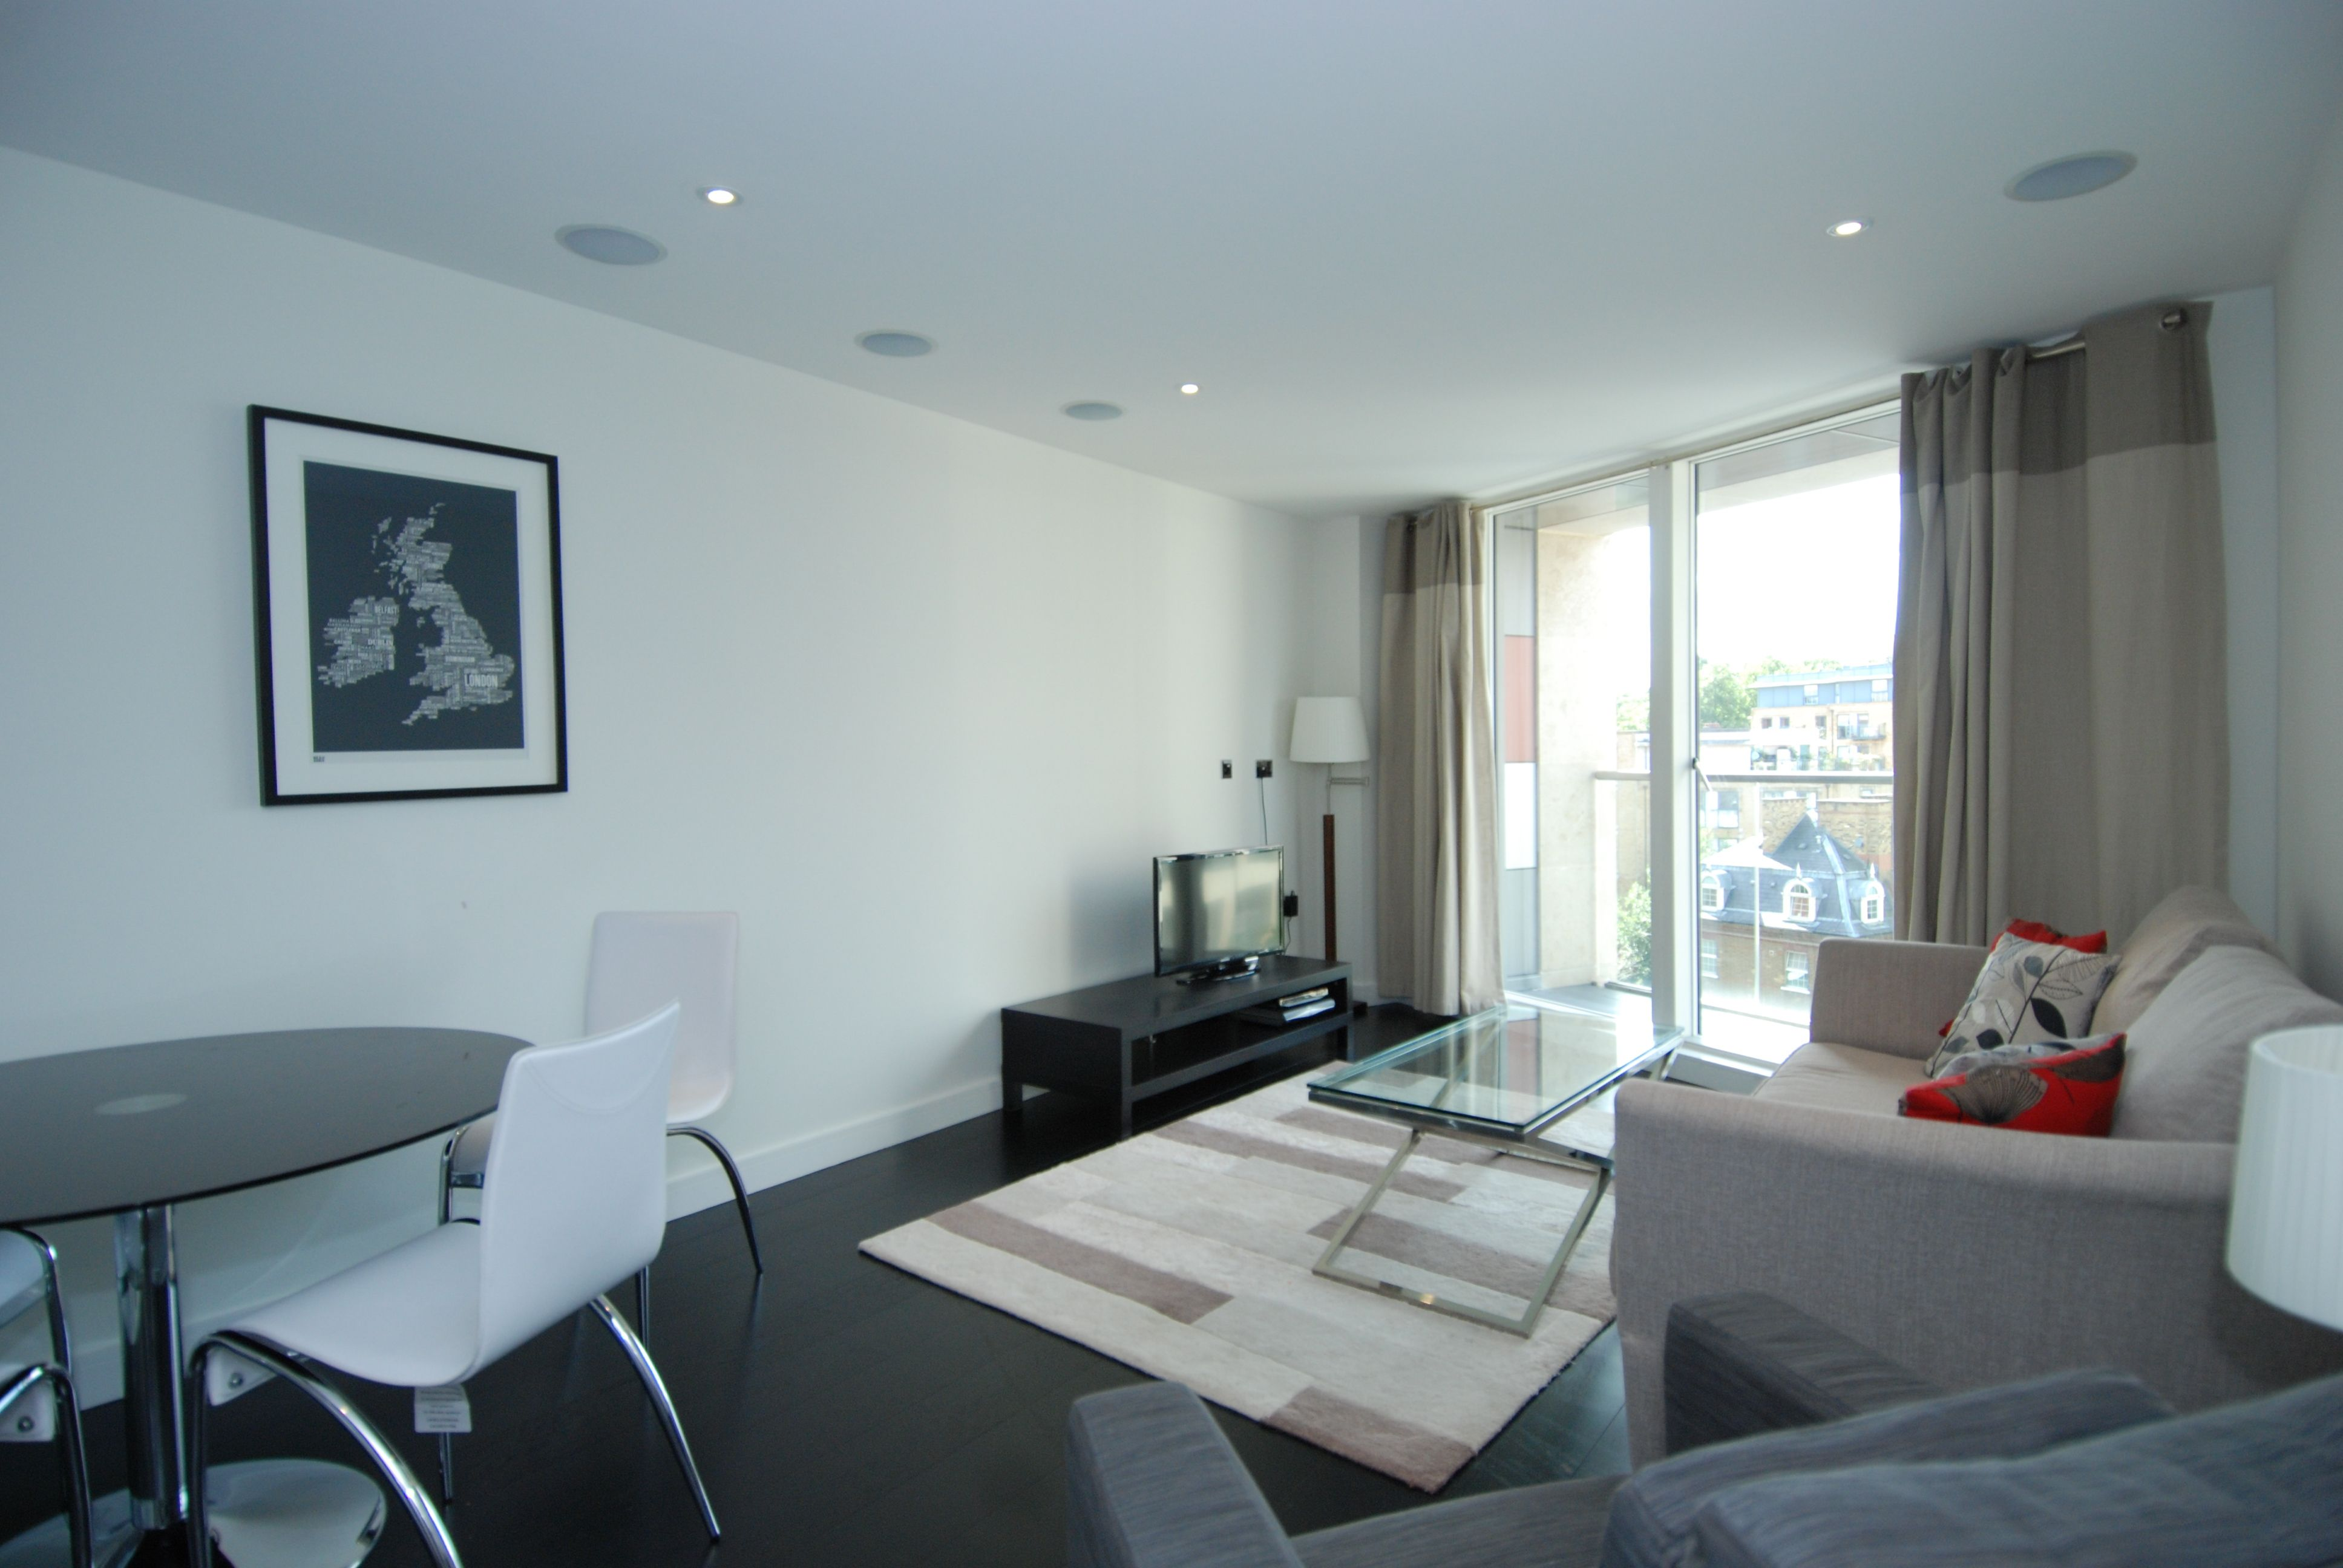 Interior design for double bedroom flat a two bedroom flat to rent in chelsea sw for  per week a